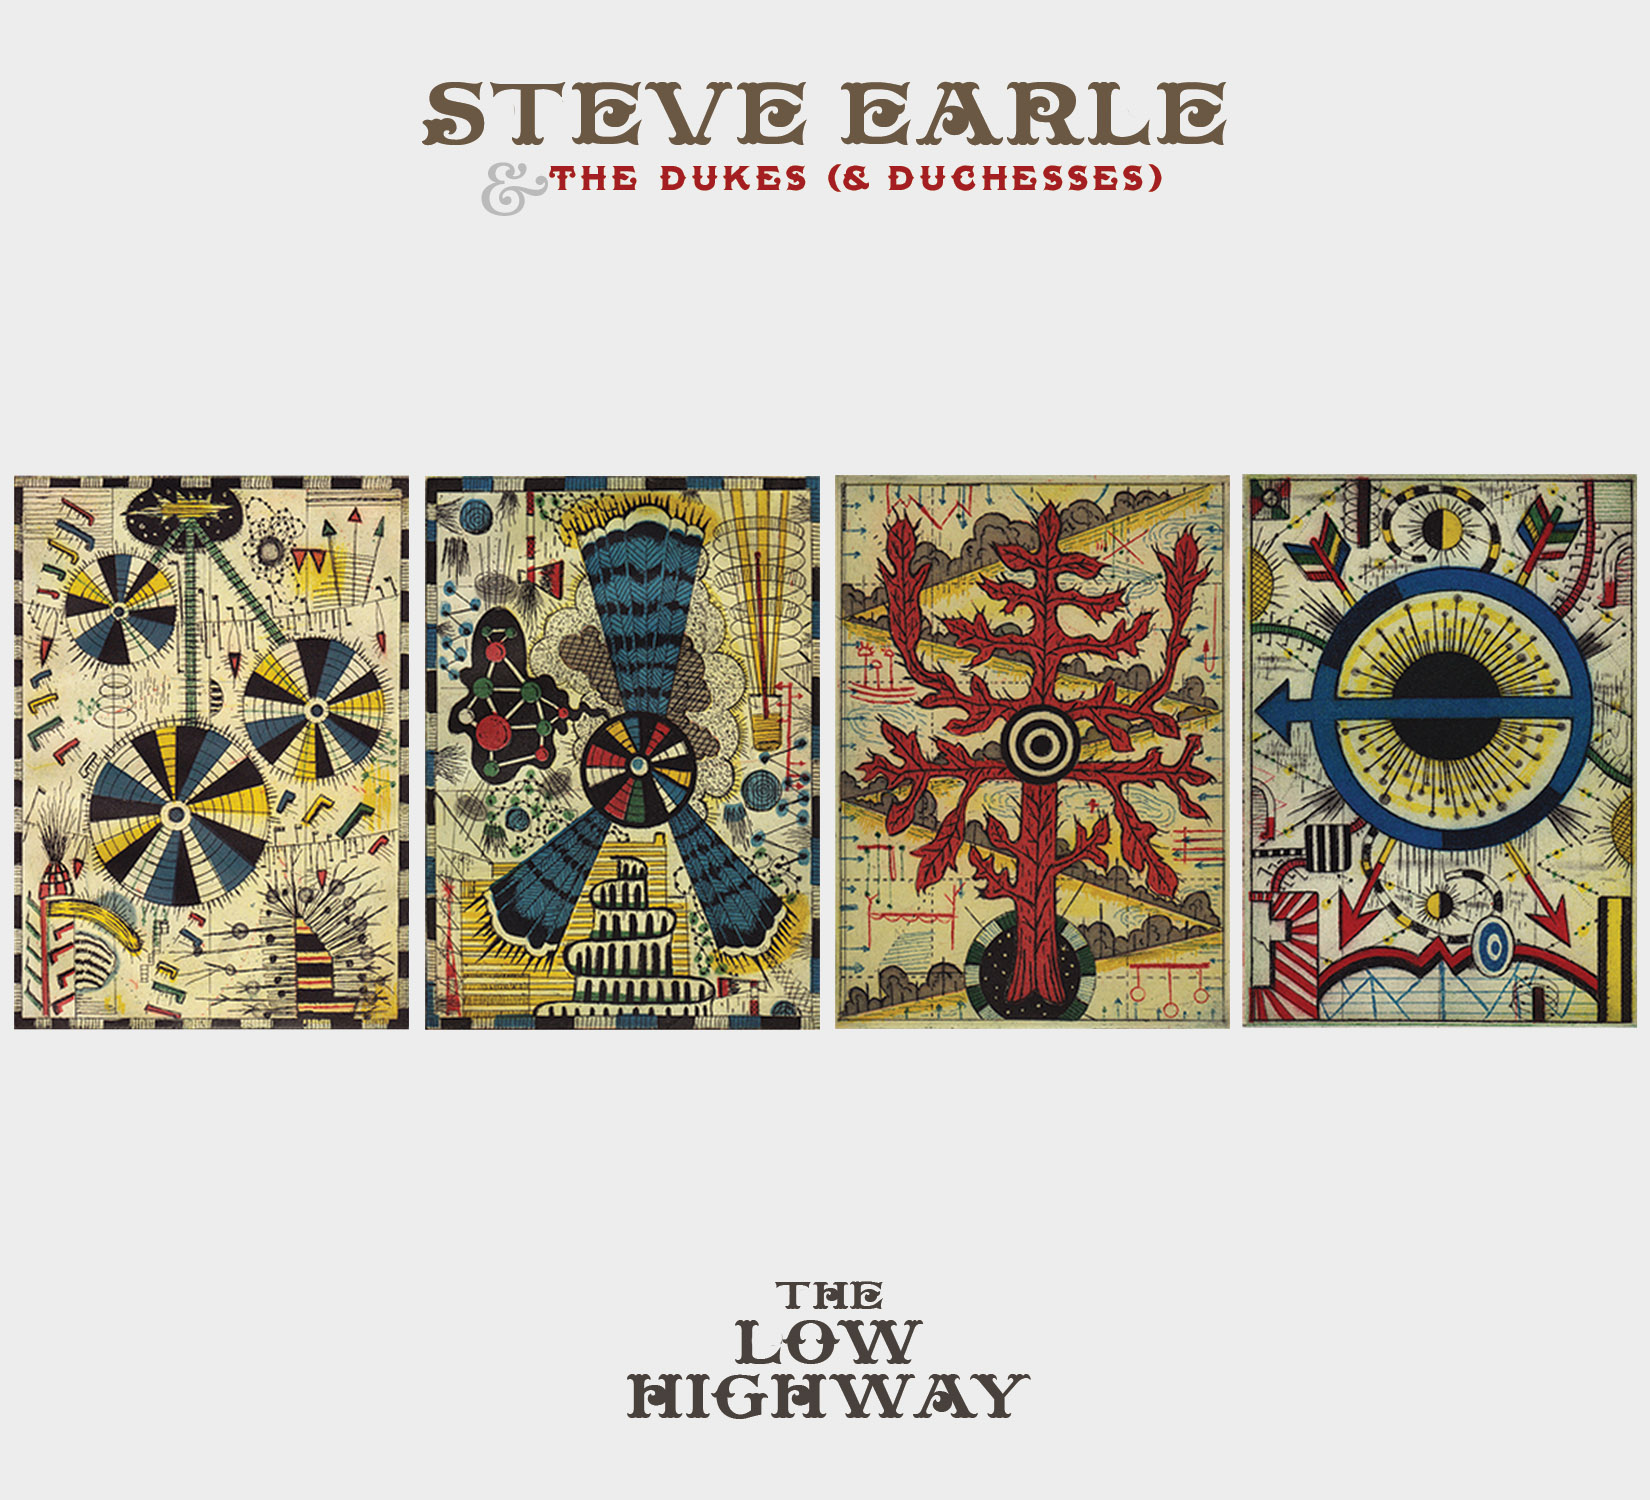 Album cover (with art by Tony Fitzpatrick) courtesy of steveearle.com